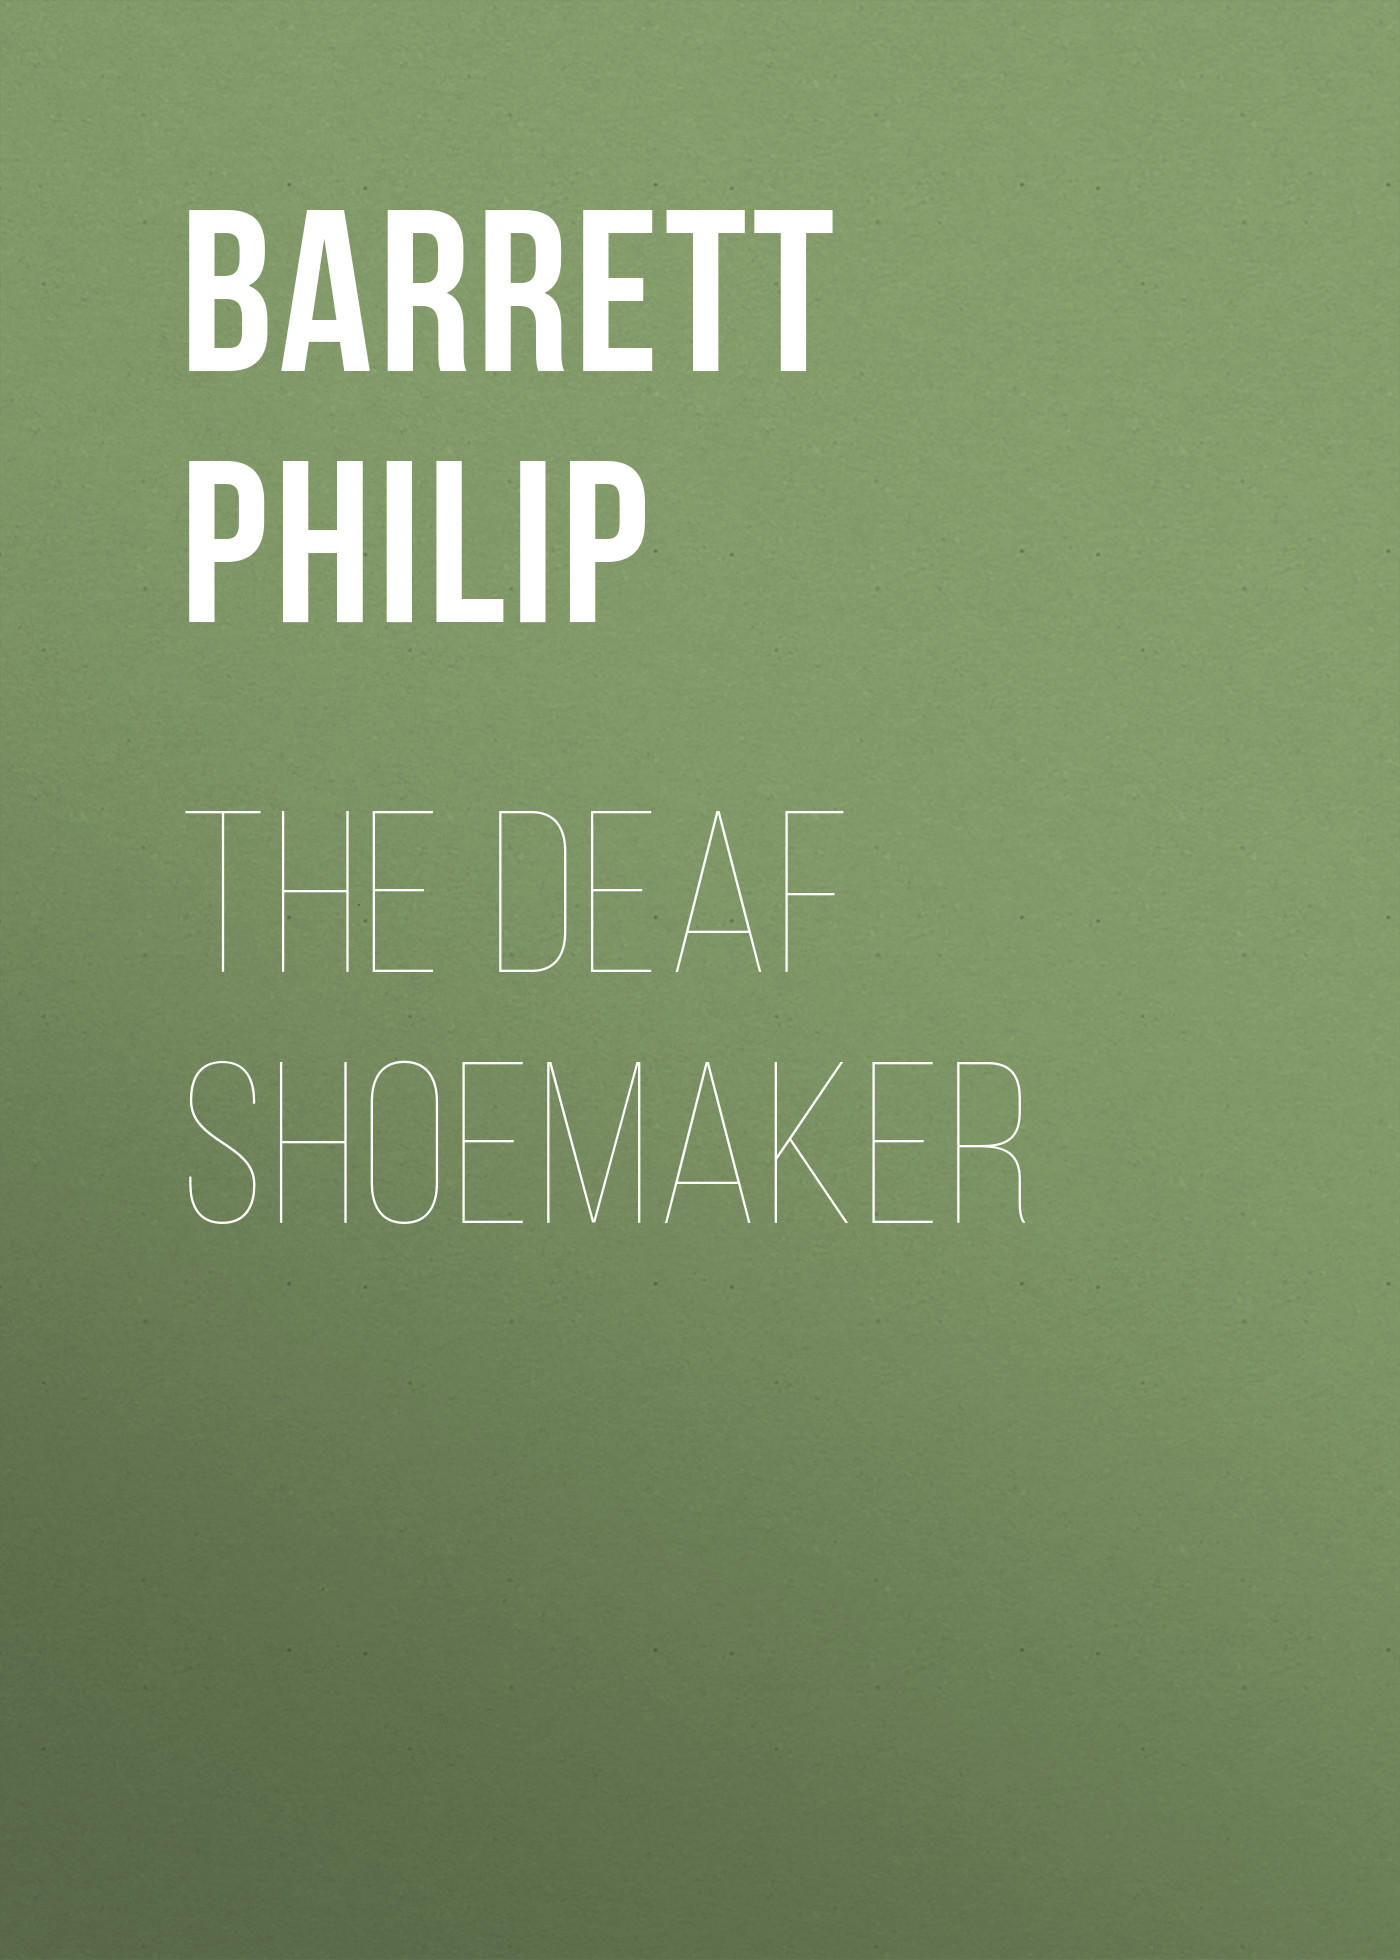 Barrett Philip The Deaf Shoemaker barrett philip the deaf shoemaker